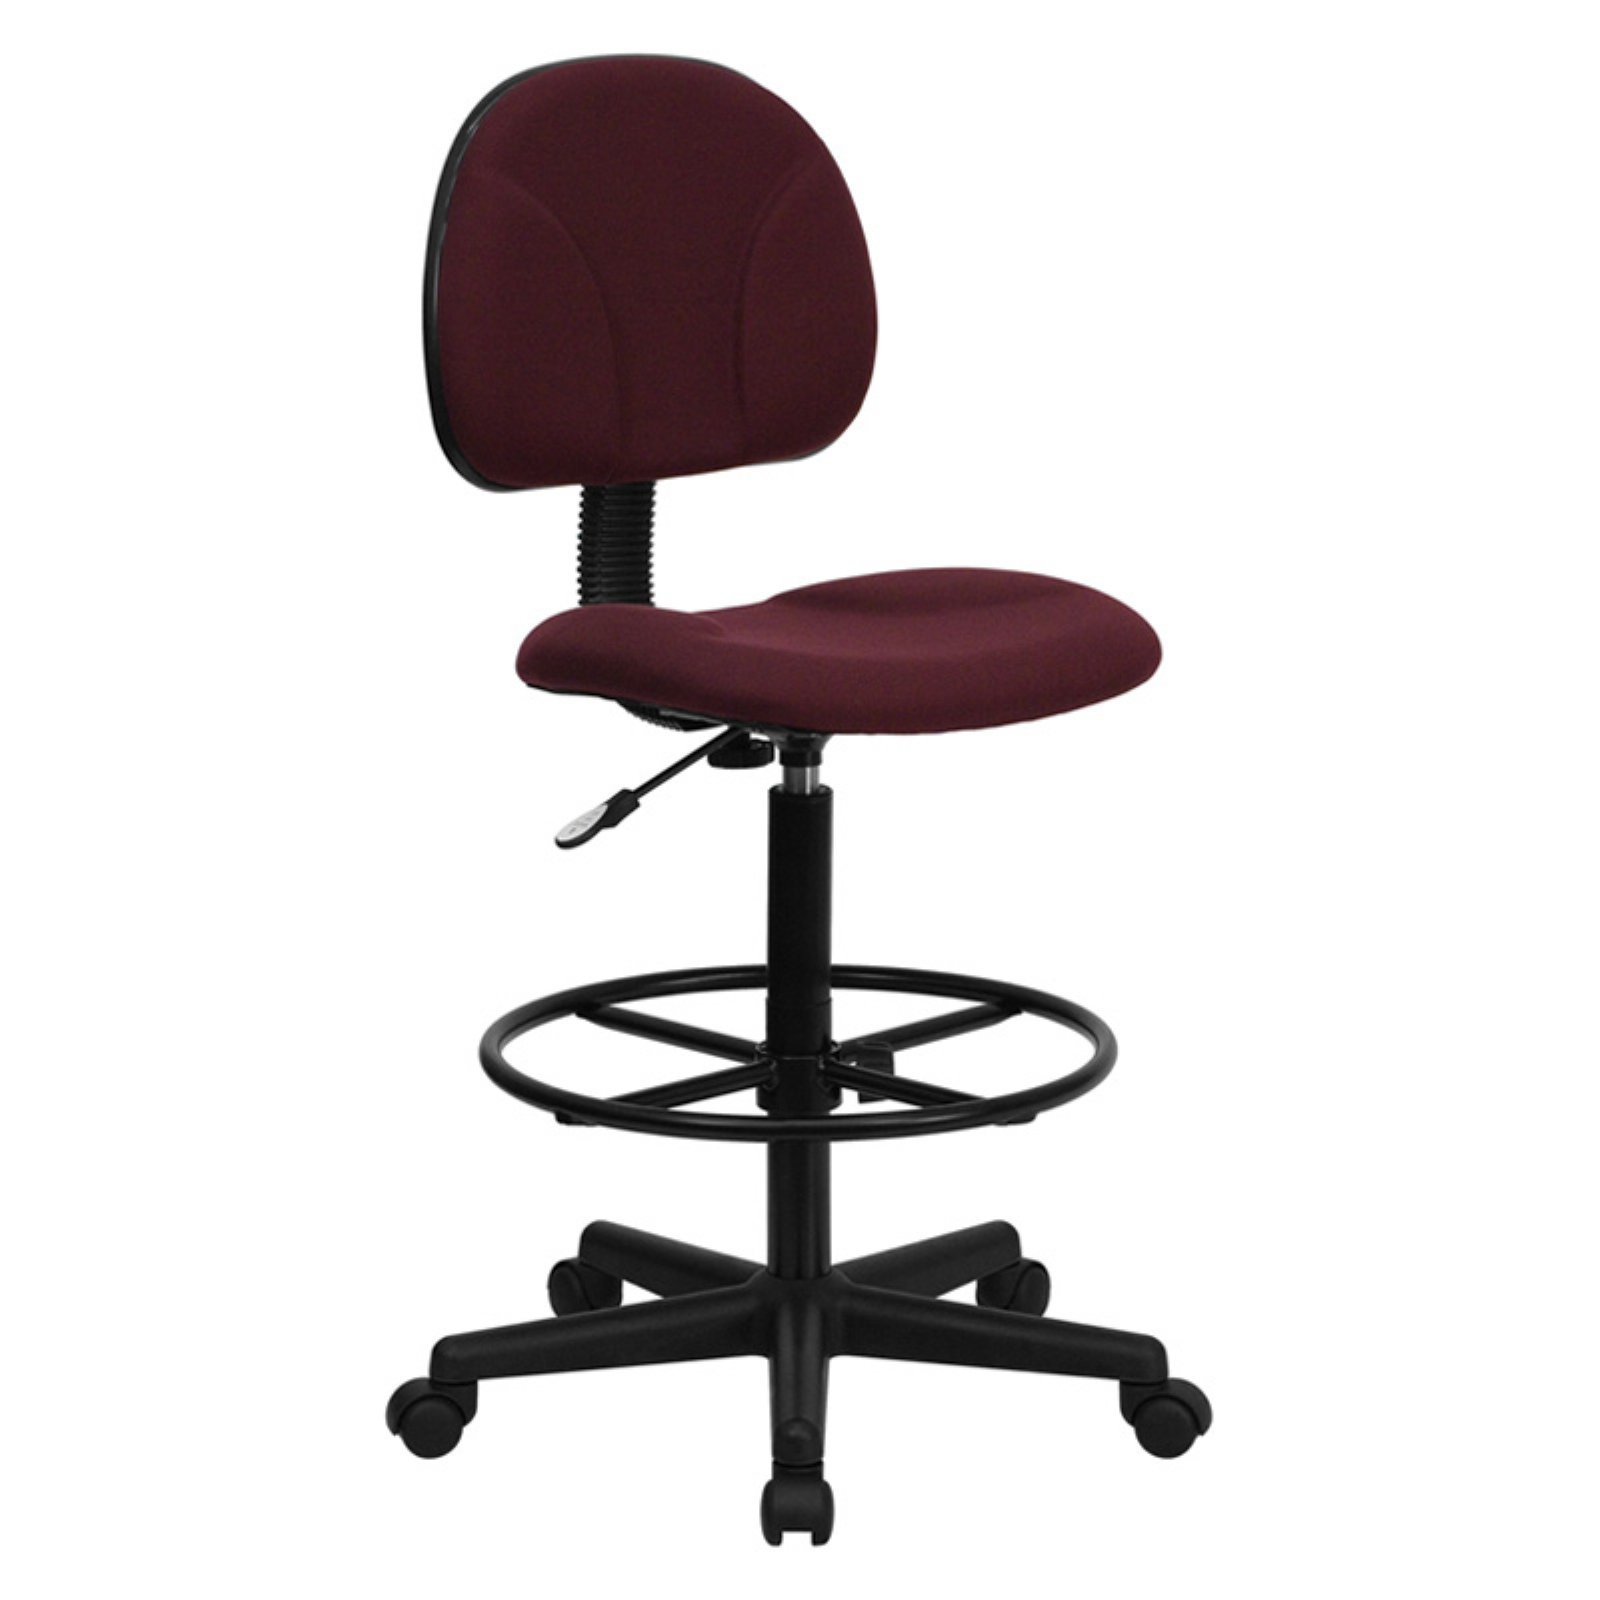 Ergonomic Multi Function Adjustable Height Drafting Stool, Burgundy